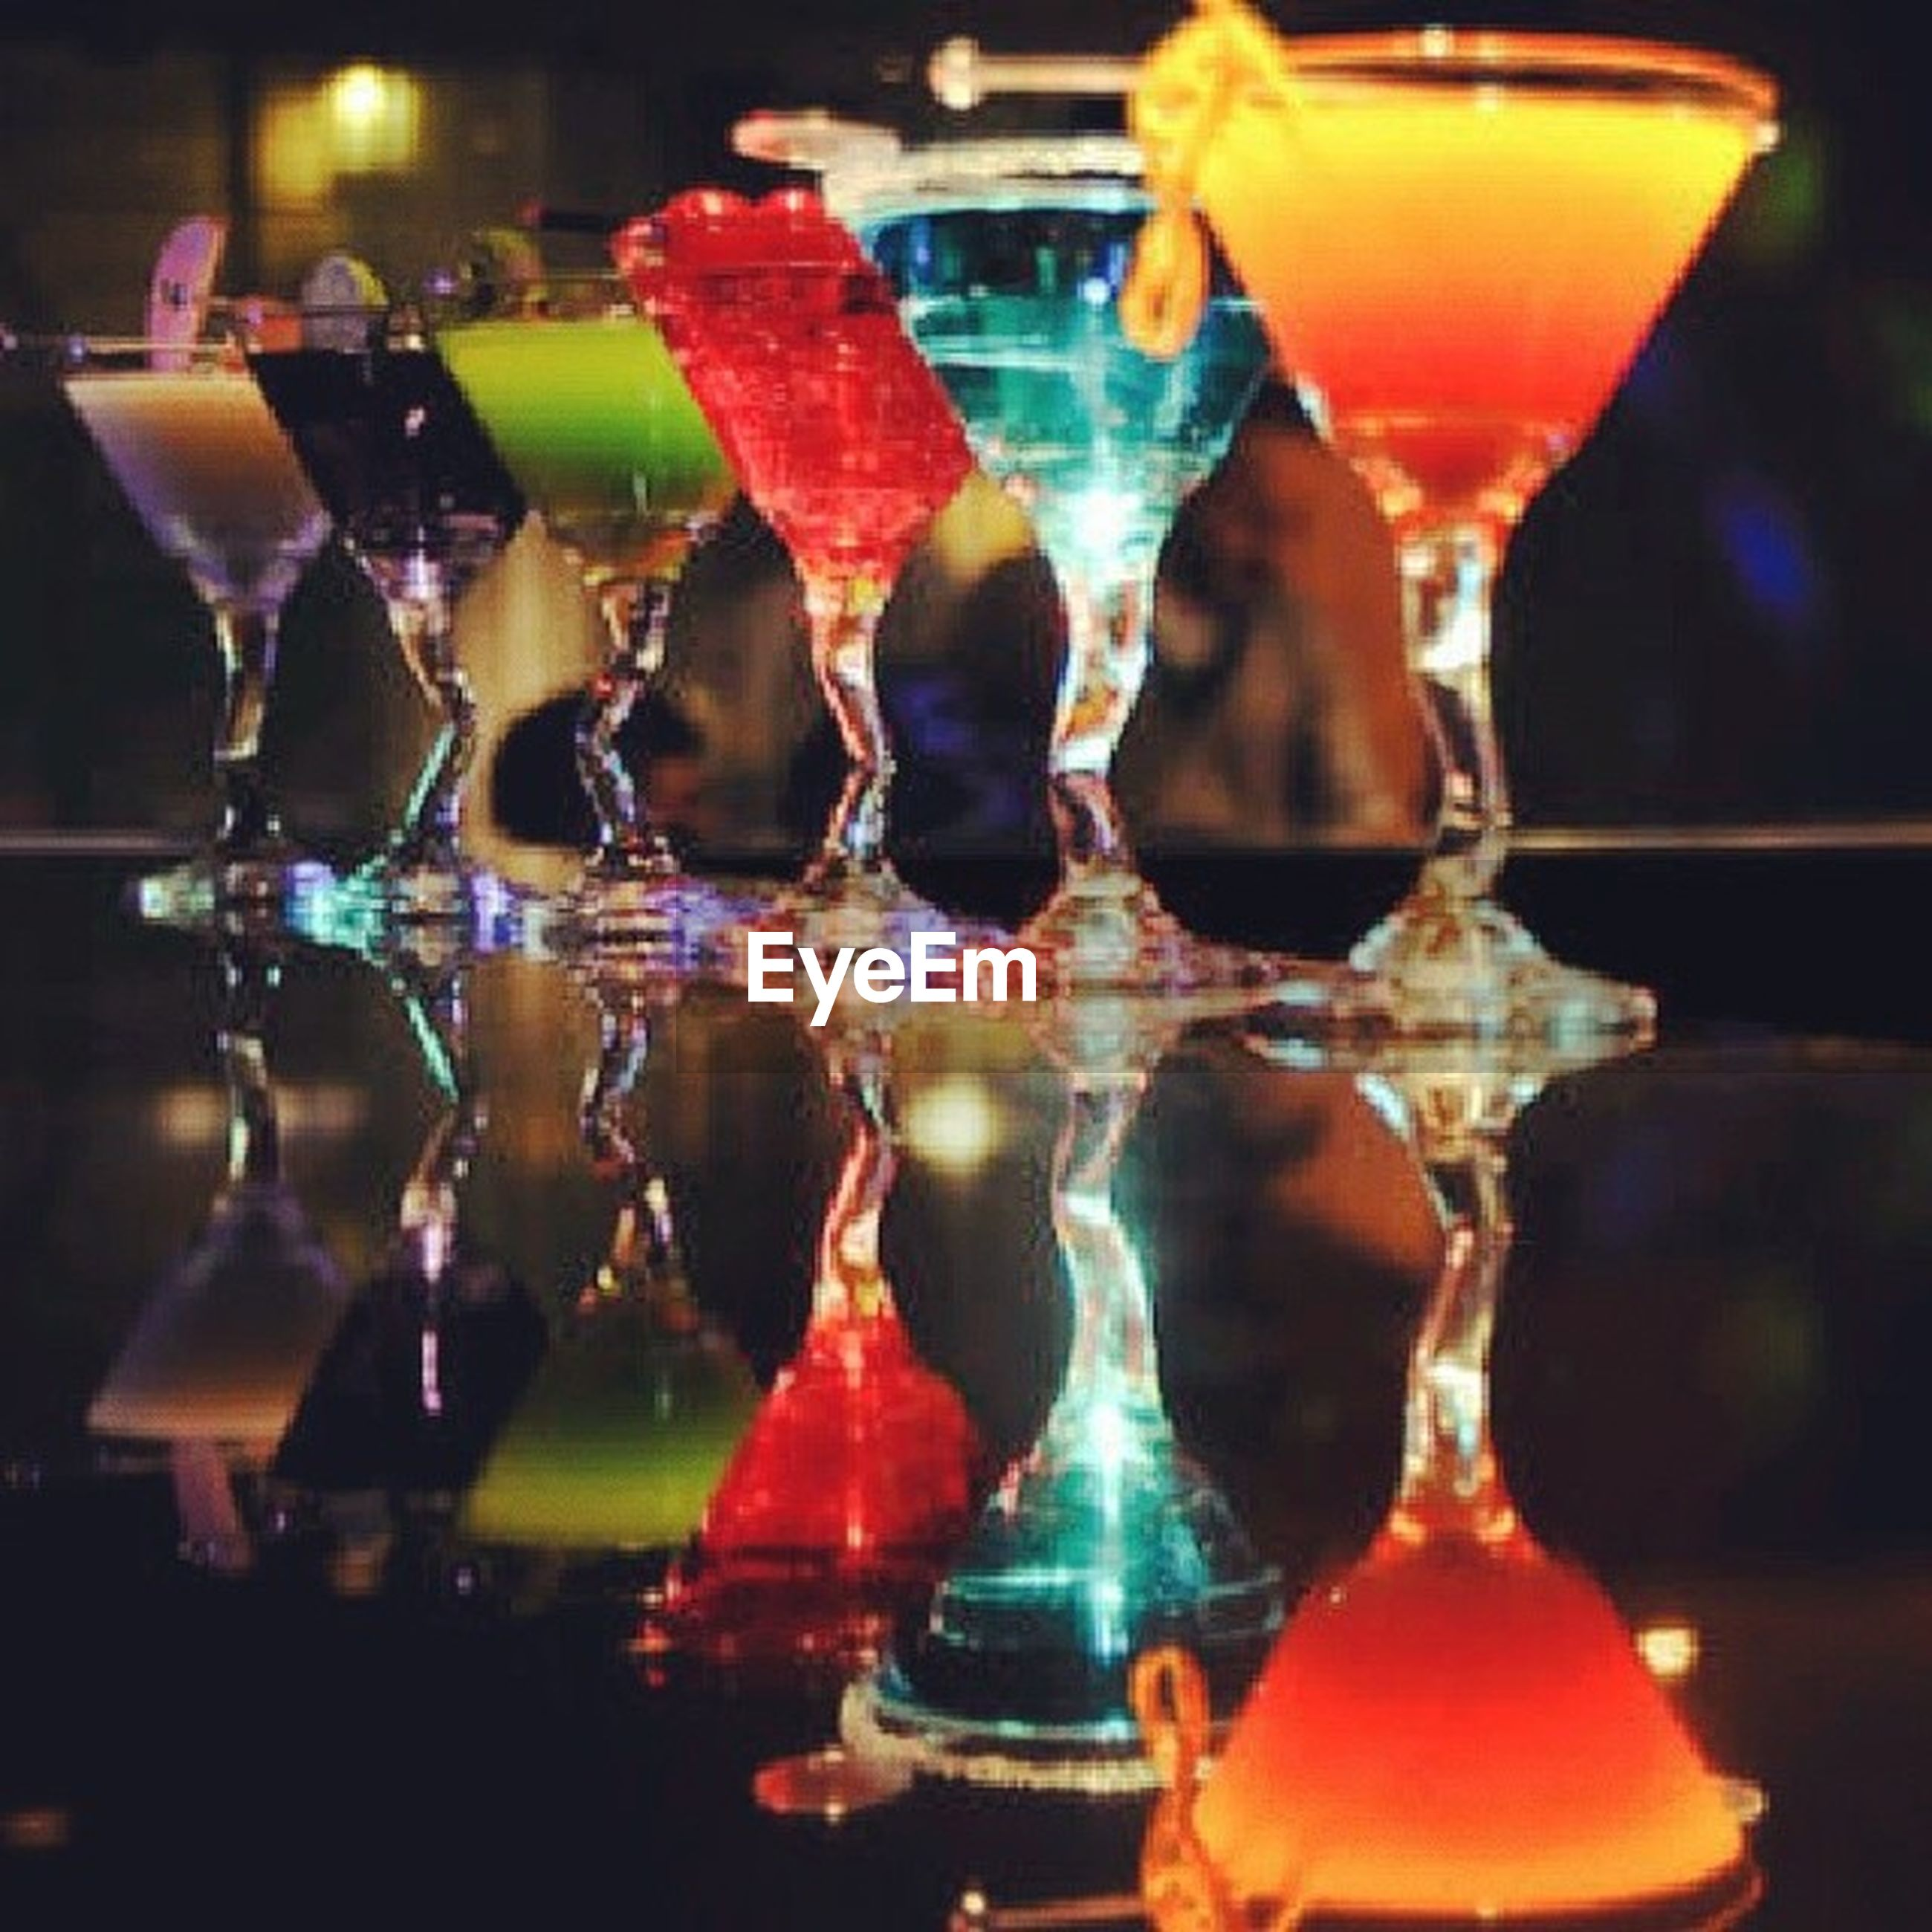 indoors, glass - material, multi colored, close-up, transparent, focus on foreground, still life, in a row, reflection, decoration, variation, hanging, celebration, selective focus, illuminated, colorful, drinking glass, glass, side by side, no people